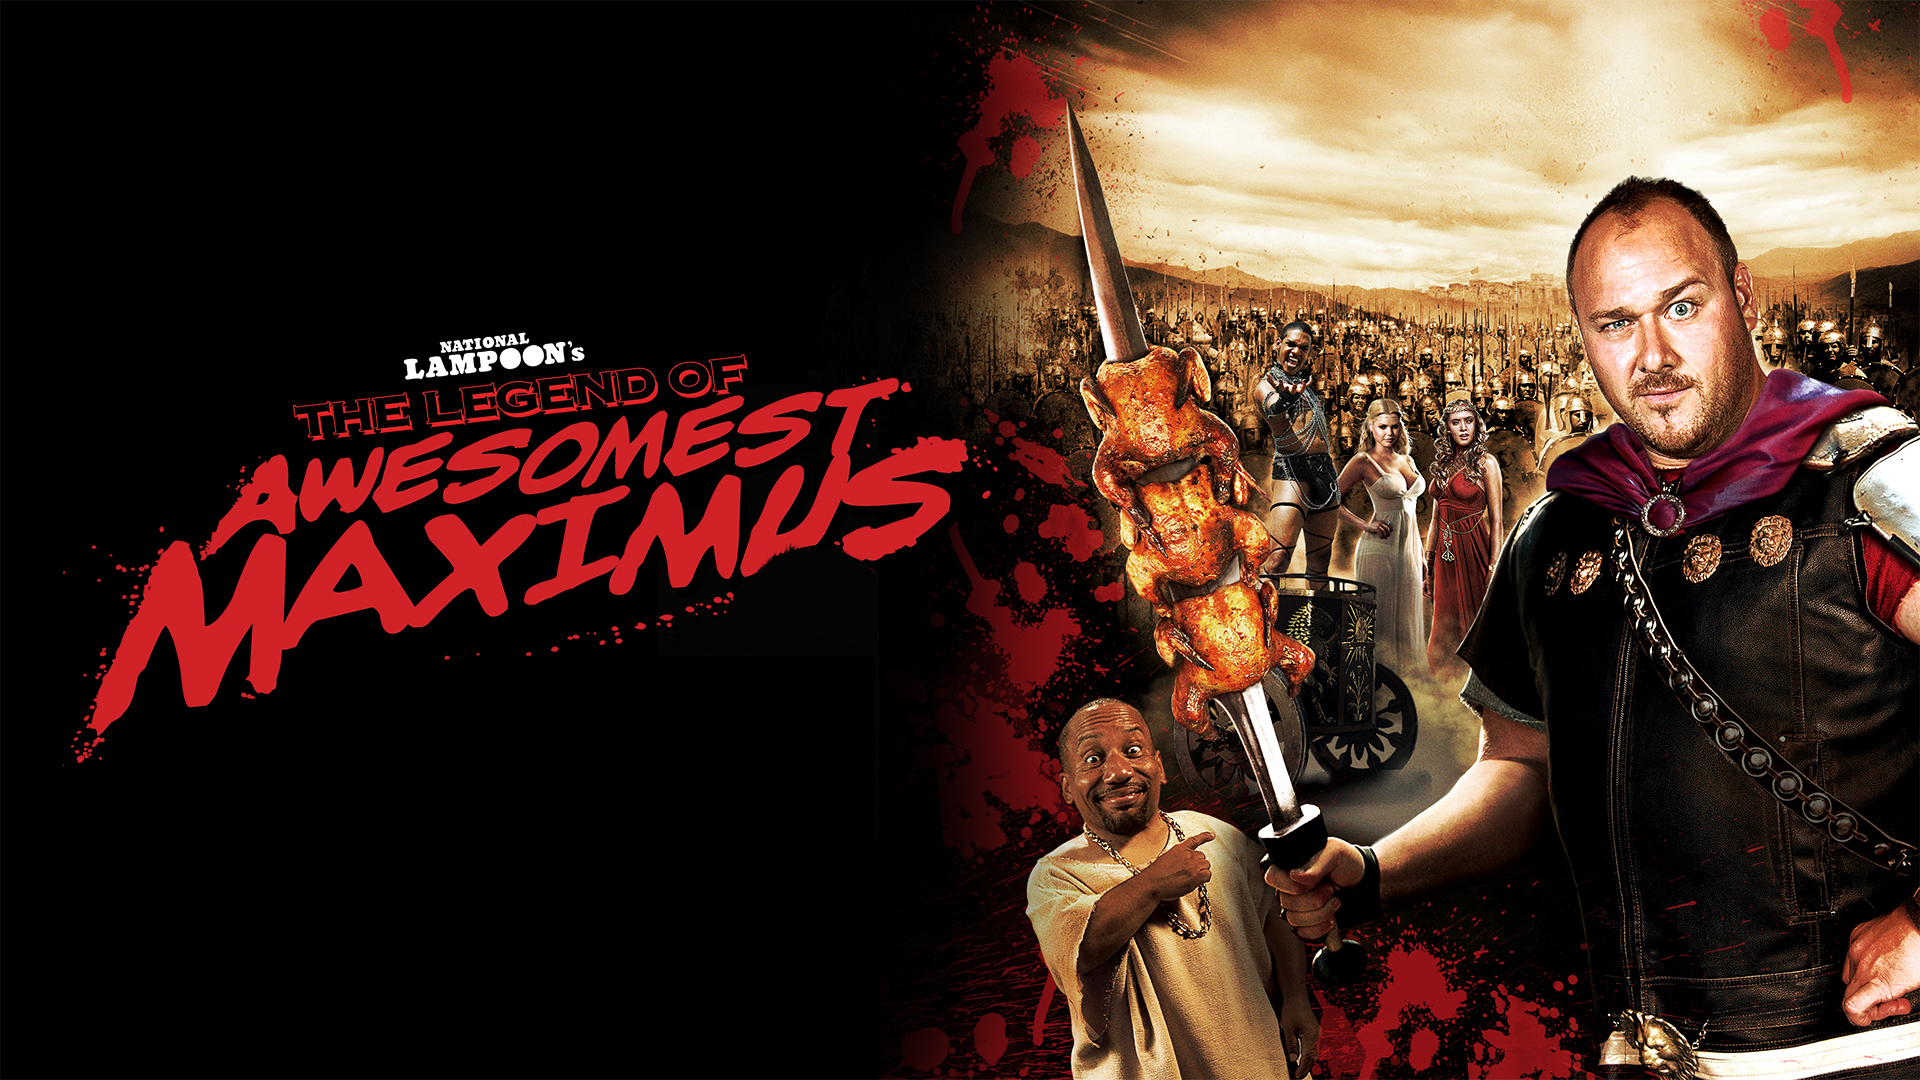 national-lampoons-legend-awesomest-maximus